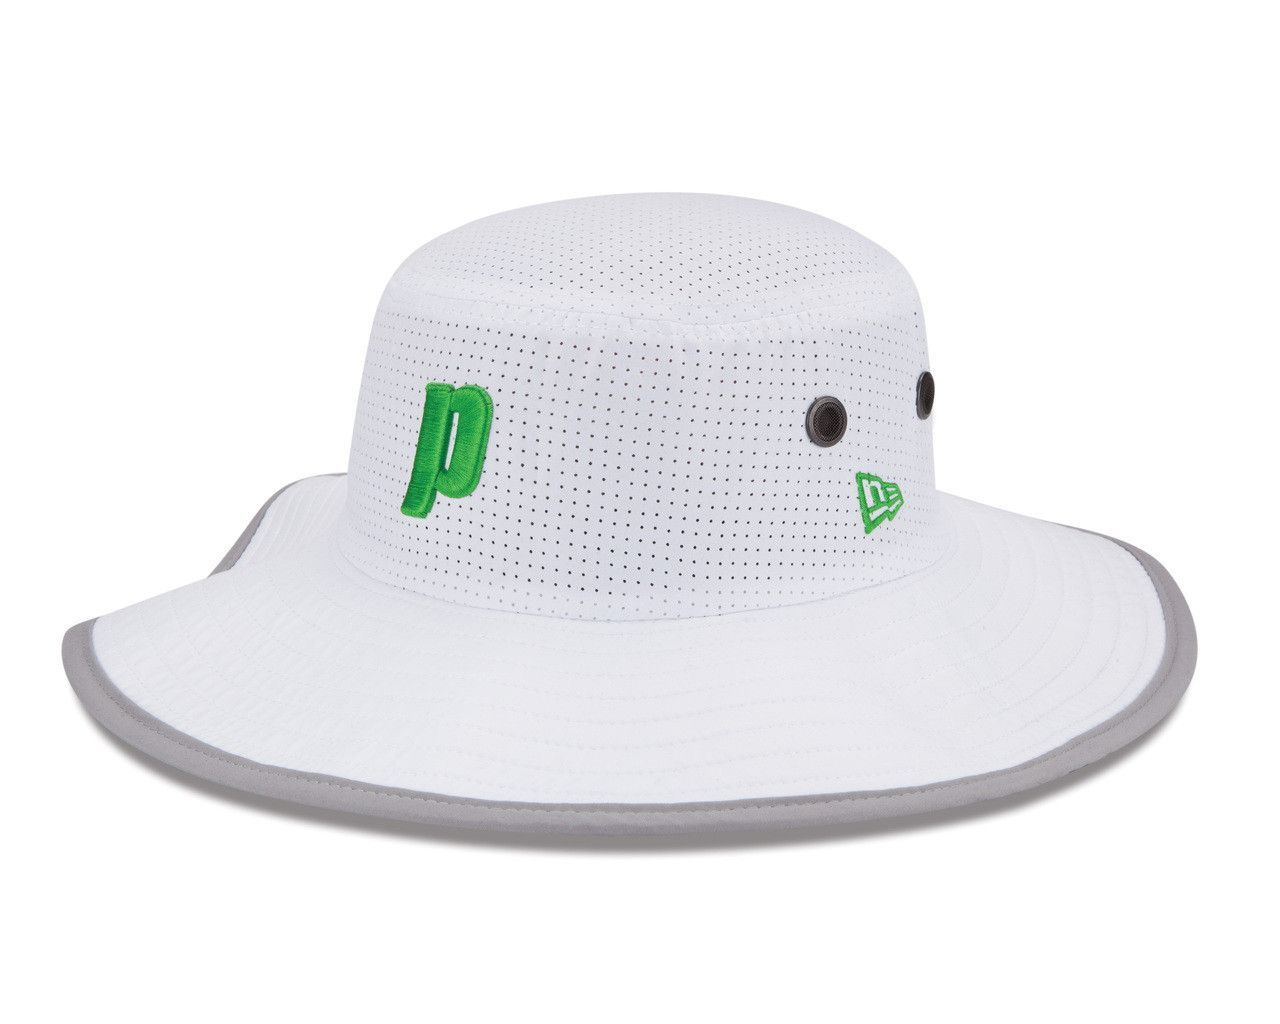 a90c9885a18d45 Prince Safari Bucket Hat White | Products | Hats, Bucket hat ...